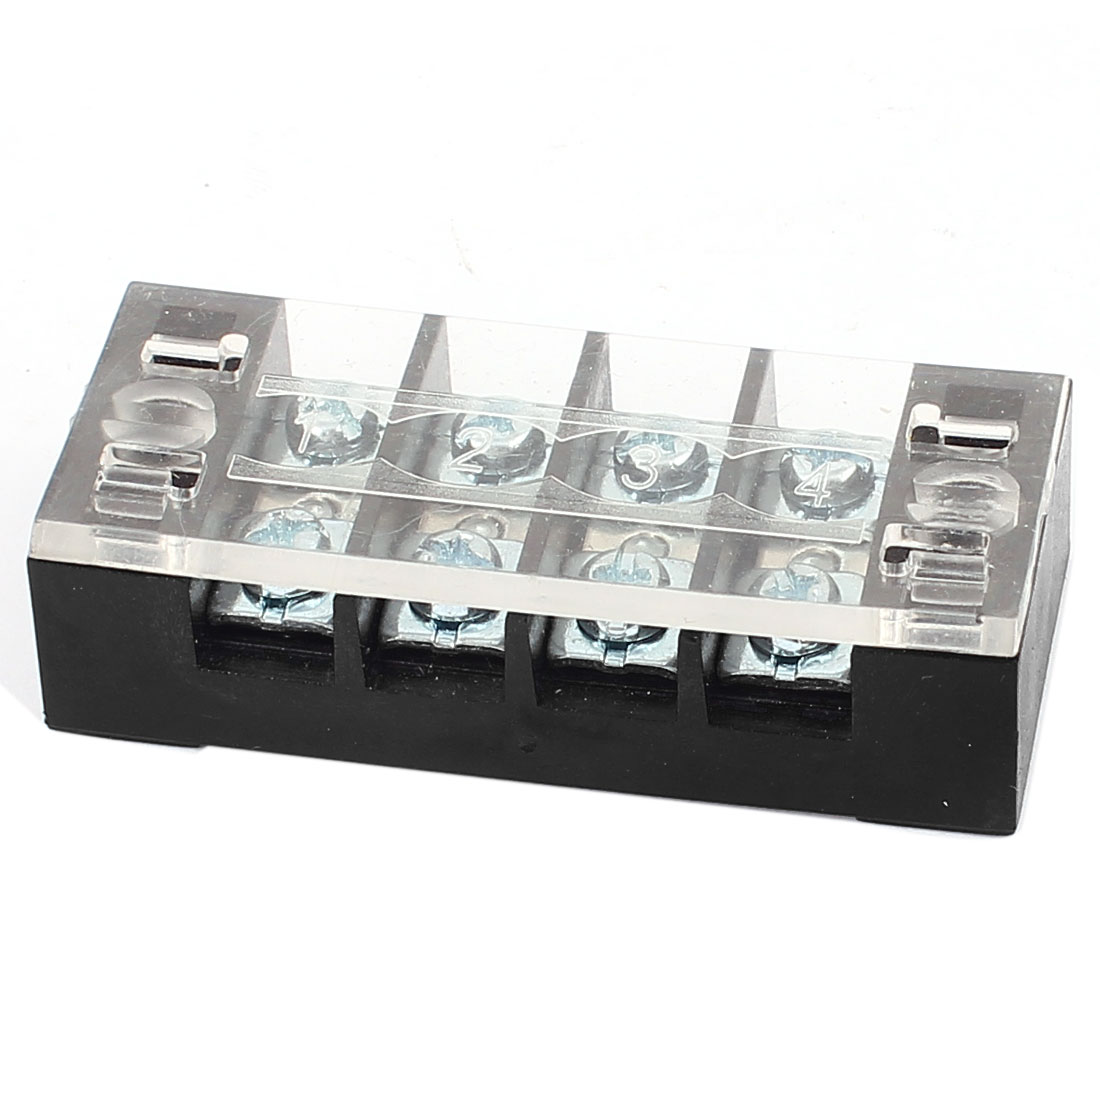 600V 25A Dual Rows 4 Positions Screw Connector Electric Barrier Terminal Block